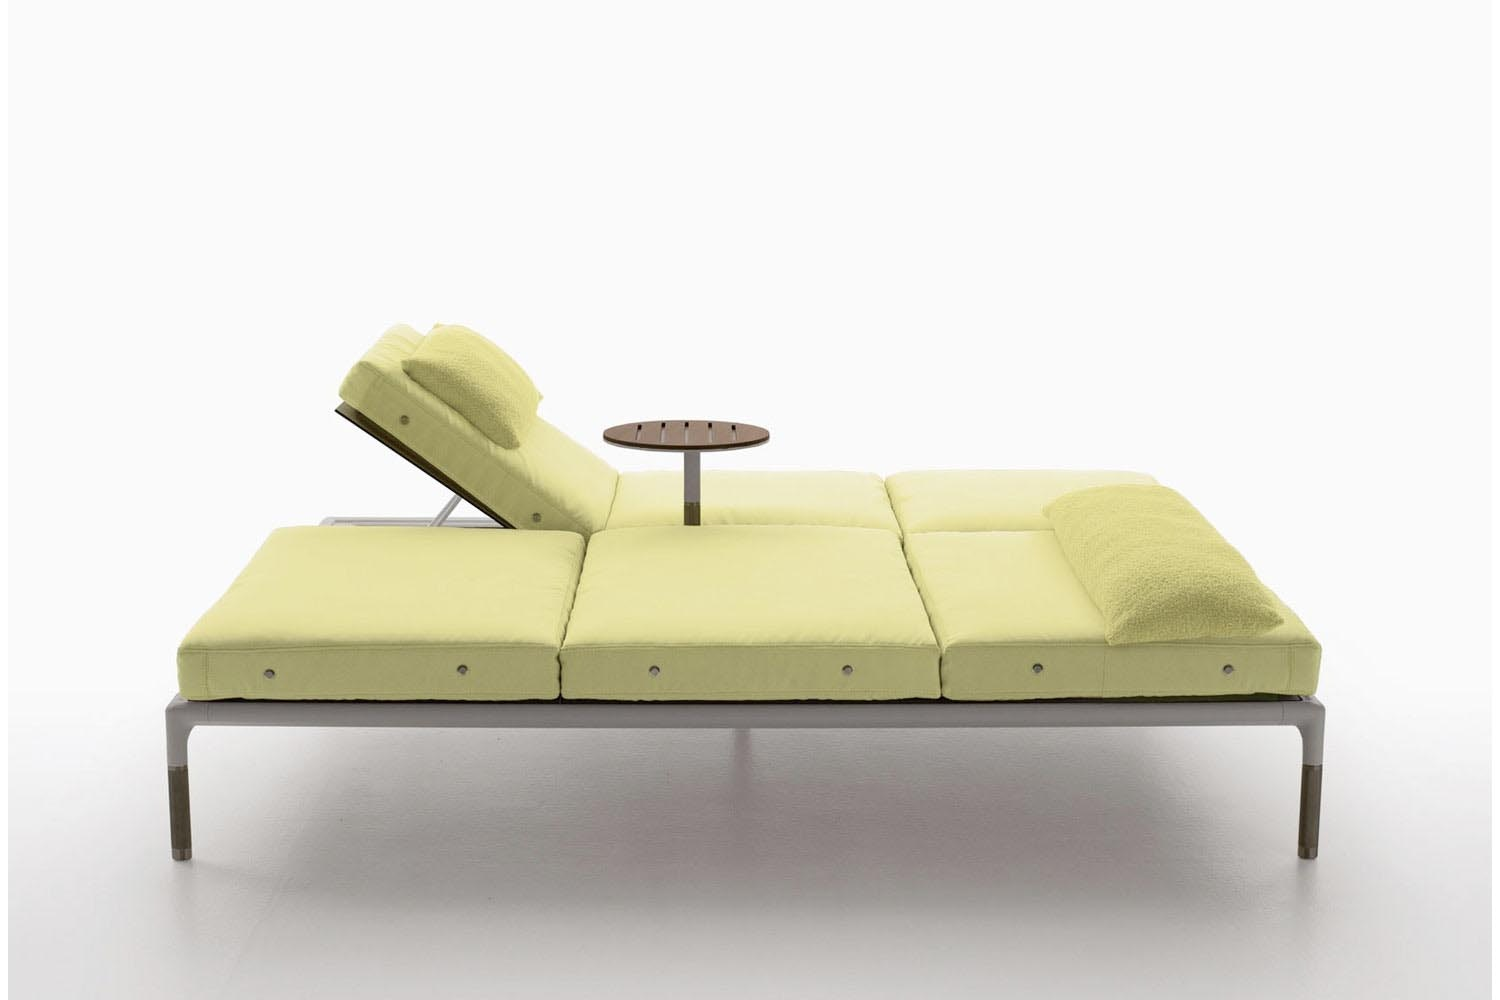 Springtime Chaise Longue by Jean-Marie Massaud for B&B Italia